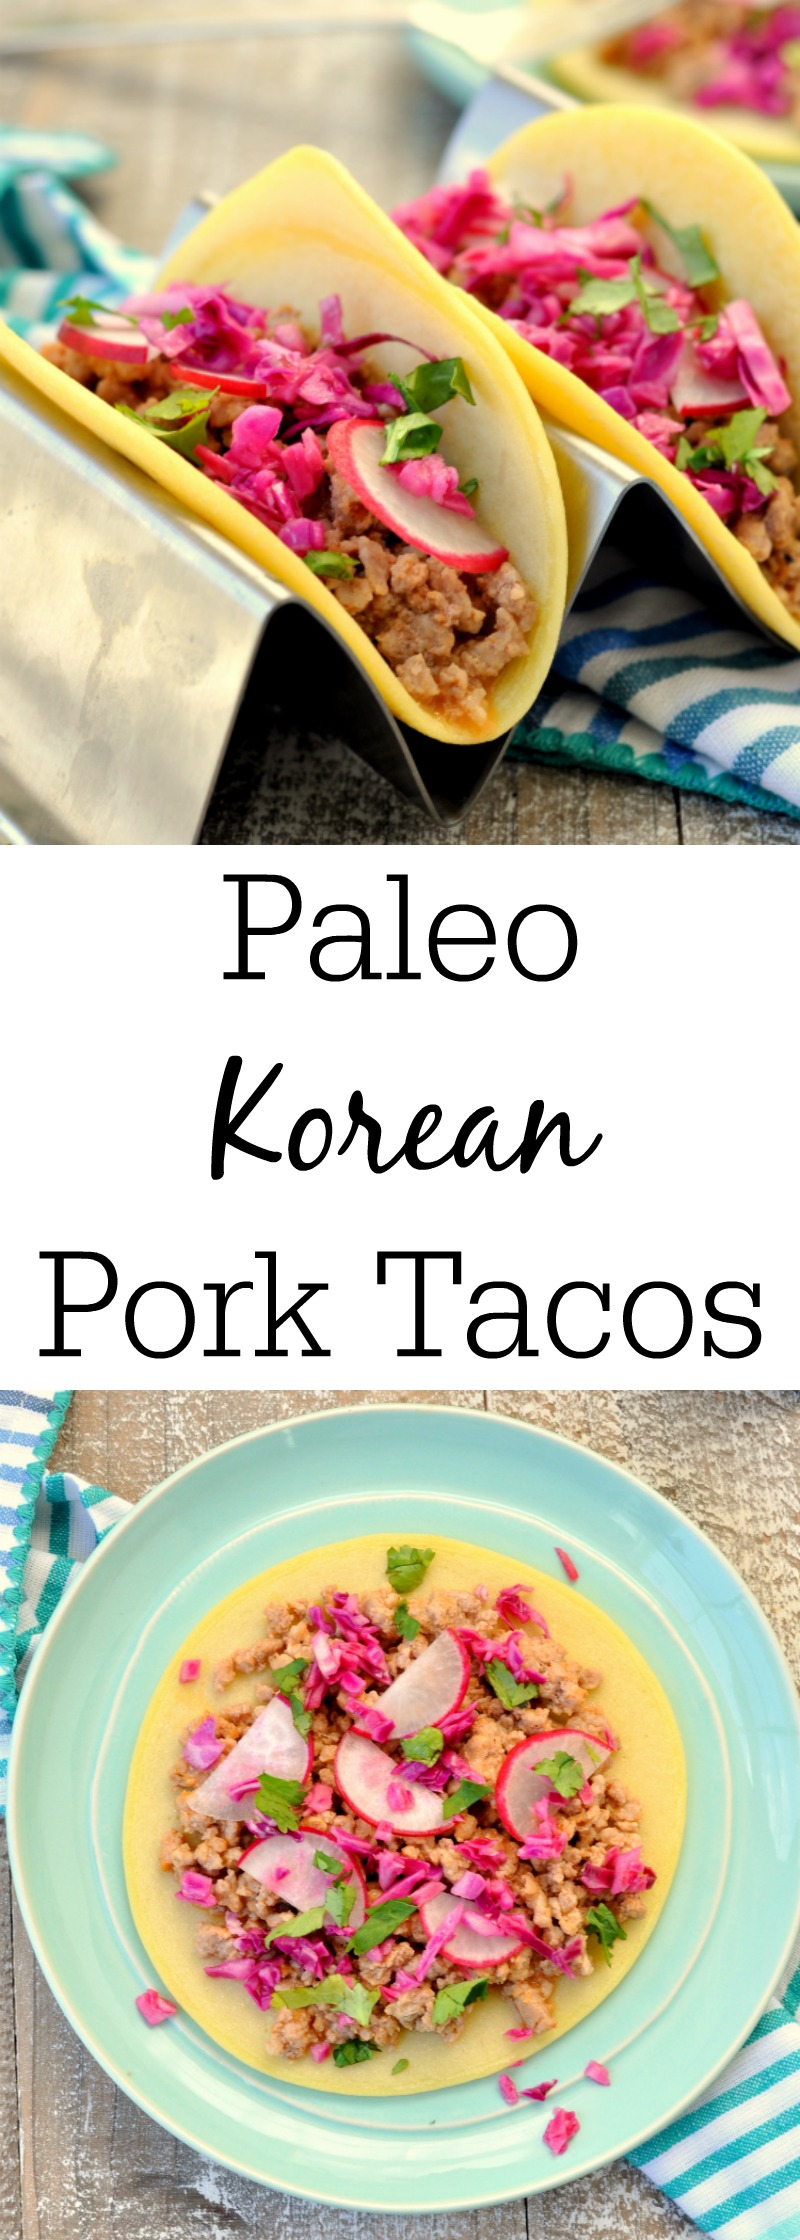 Paleo Korean Pork Tacos